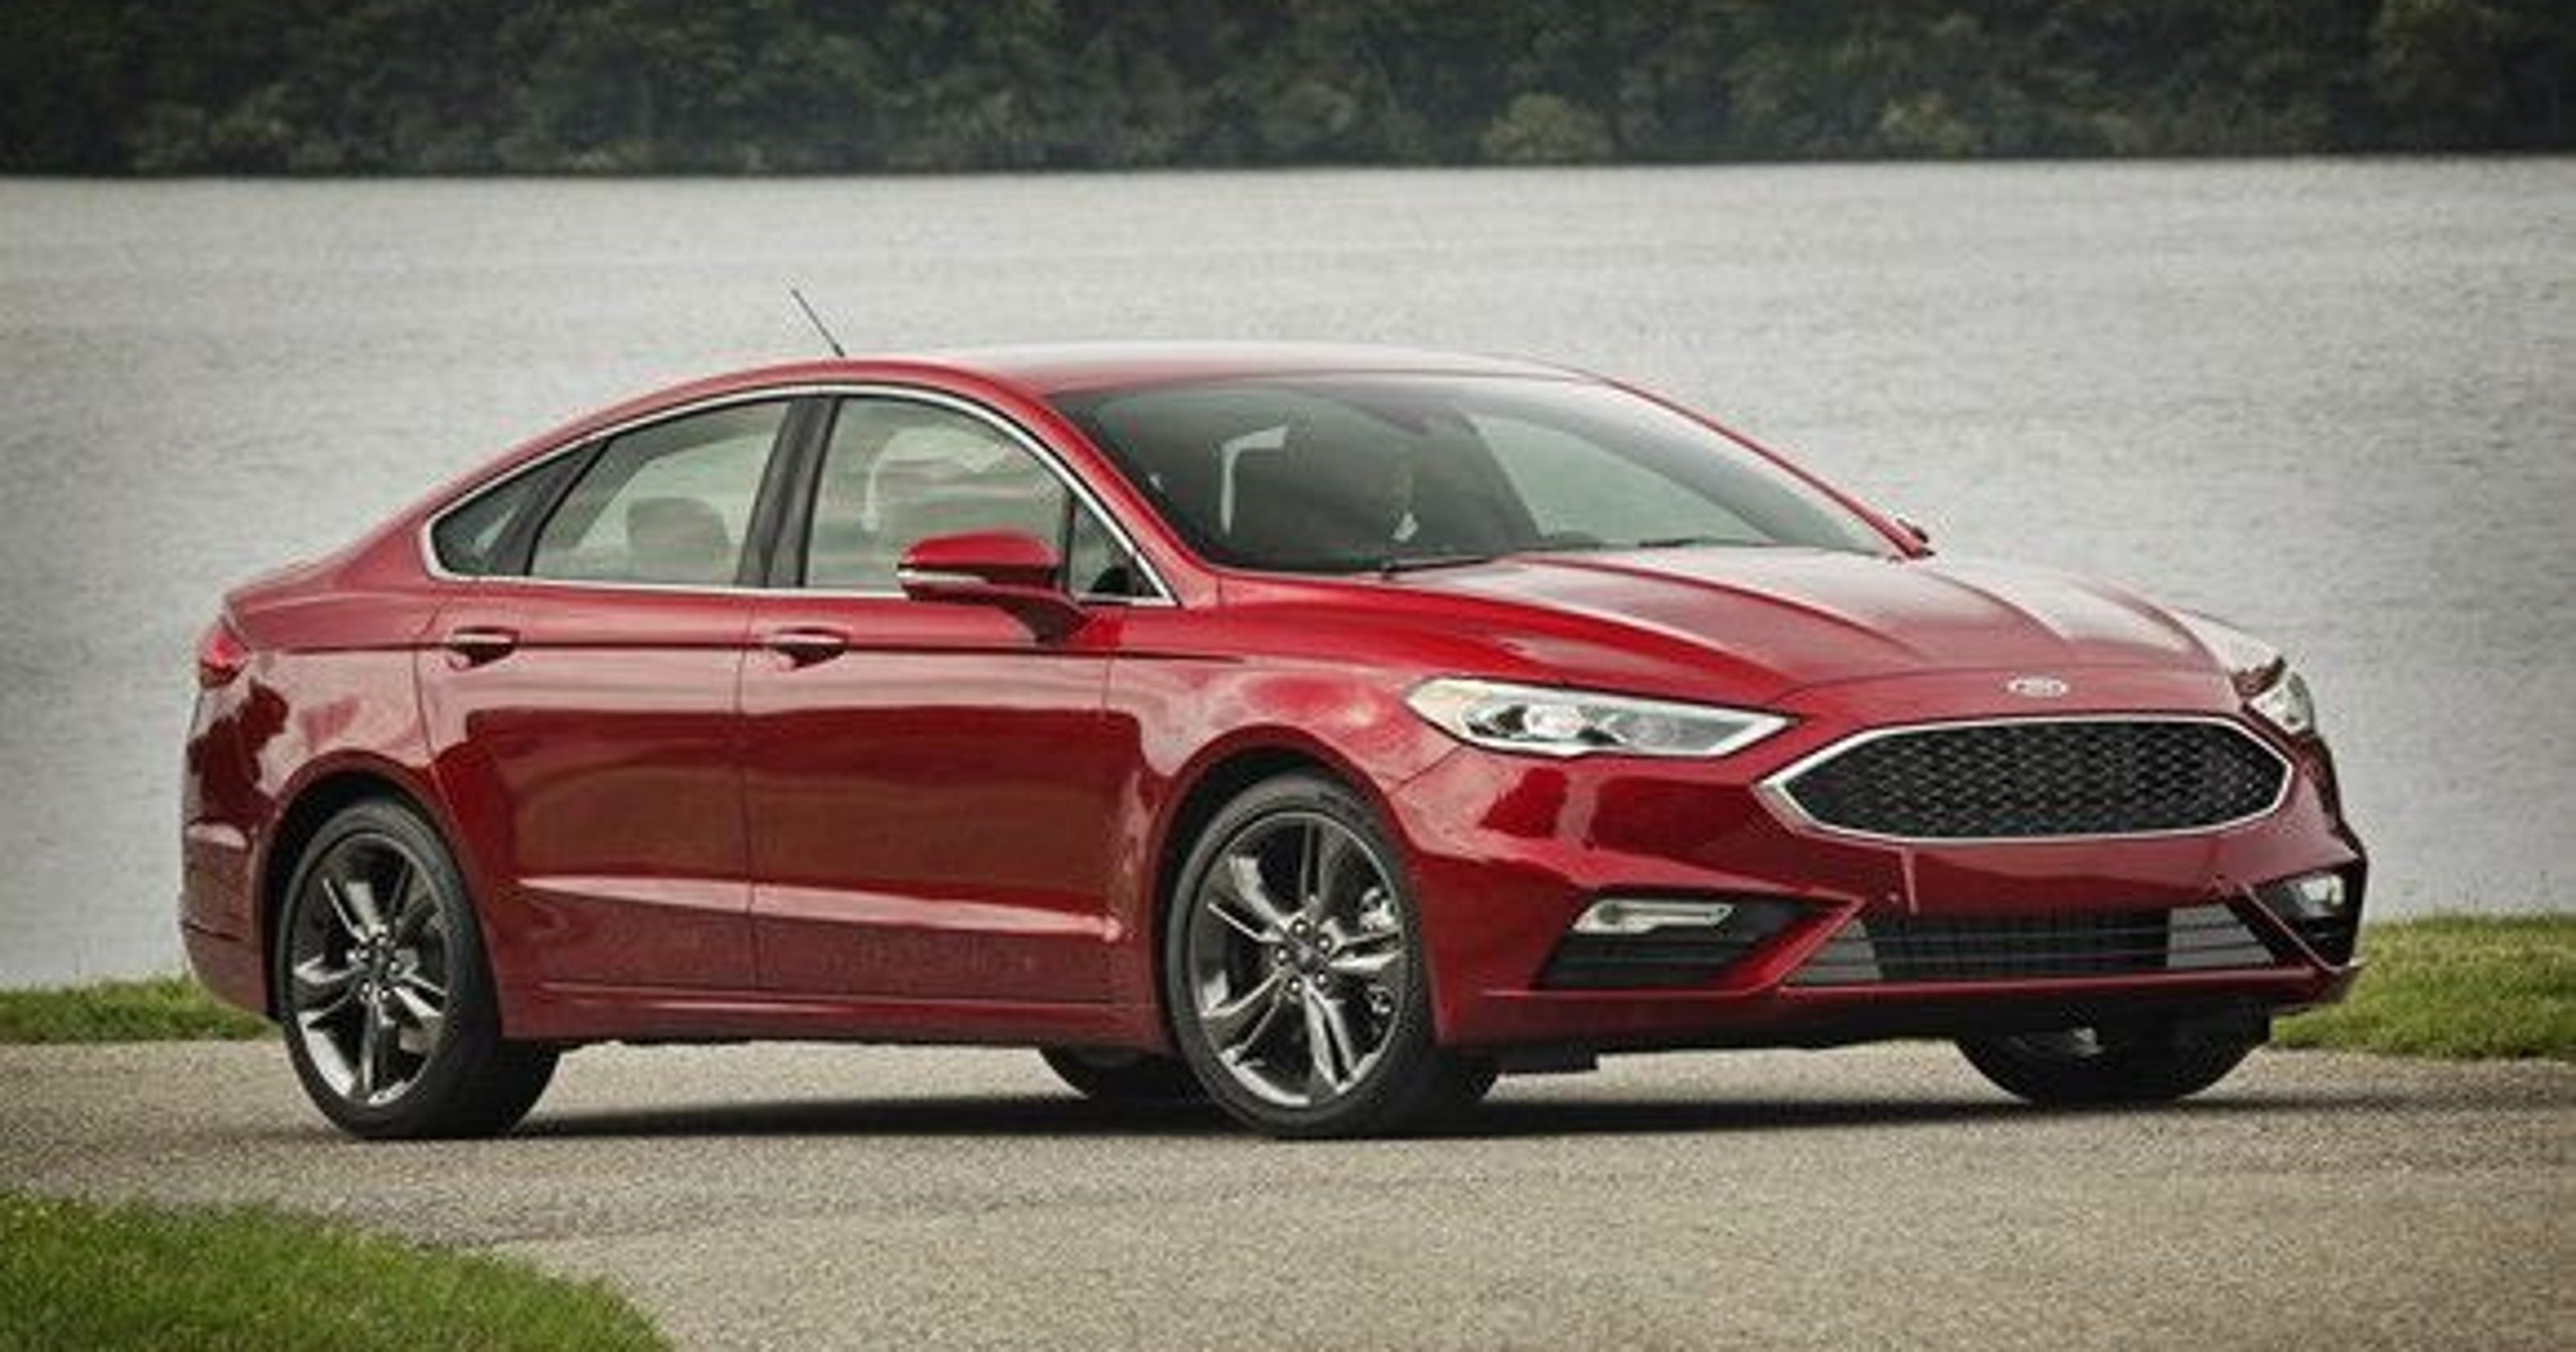 Loose Steering Wheels Trigger Ford Recall Of 1 4m Fusion Lincoln Mkz Cars